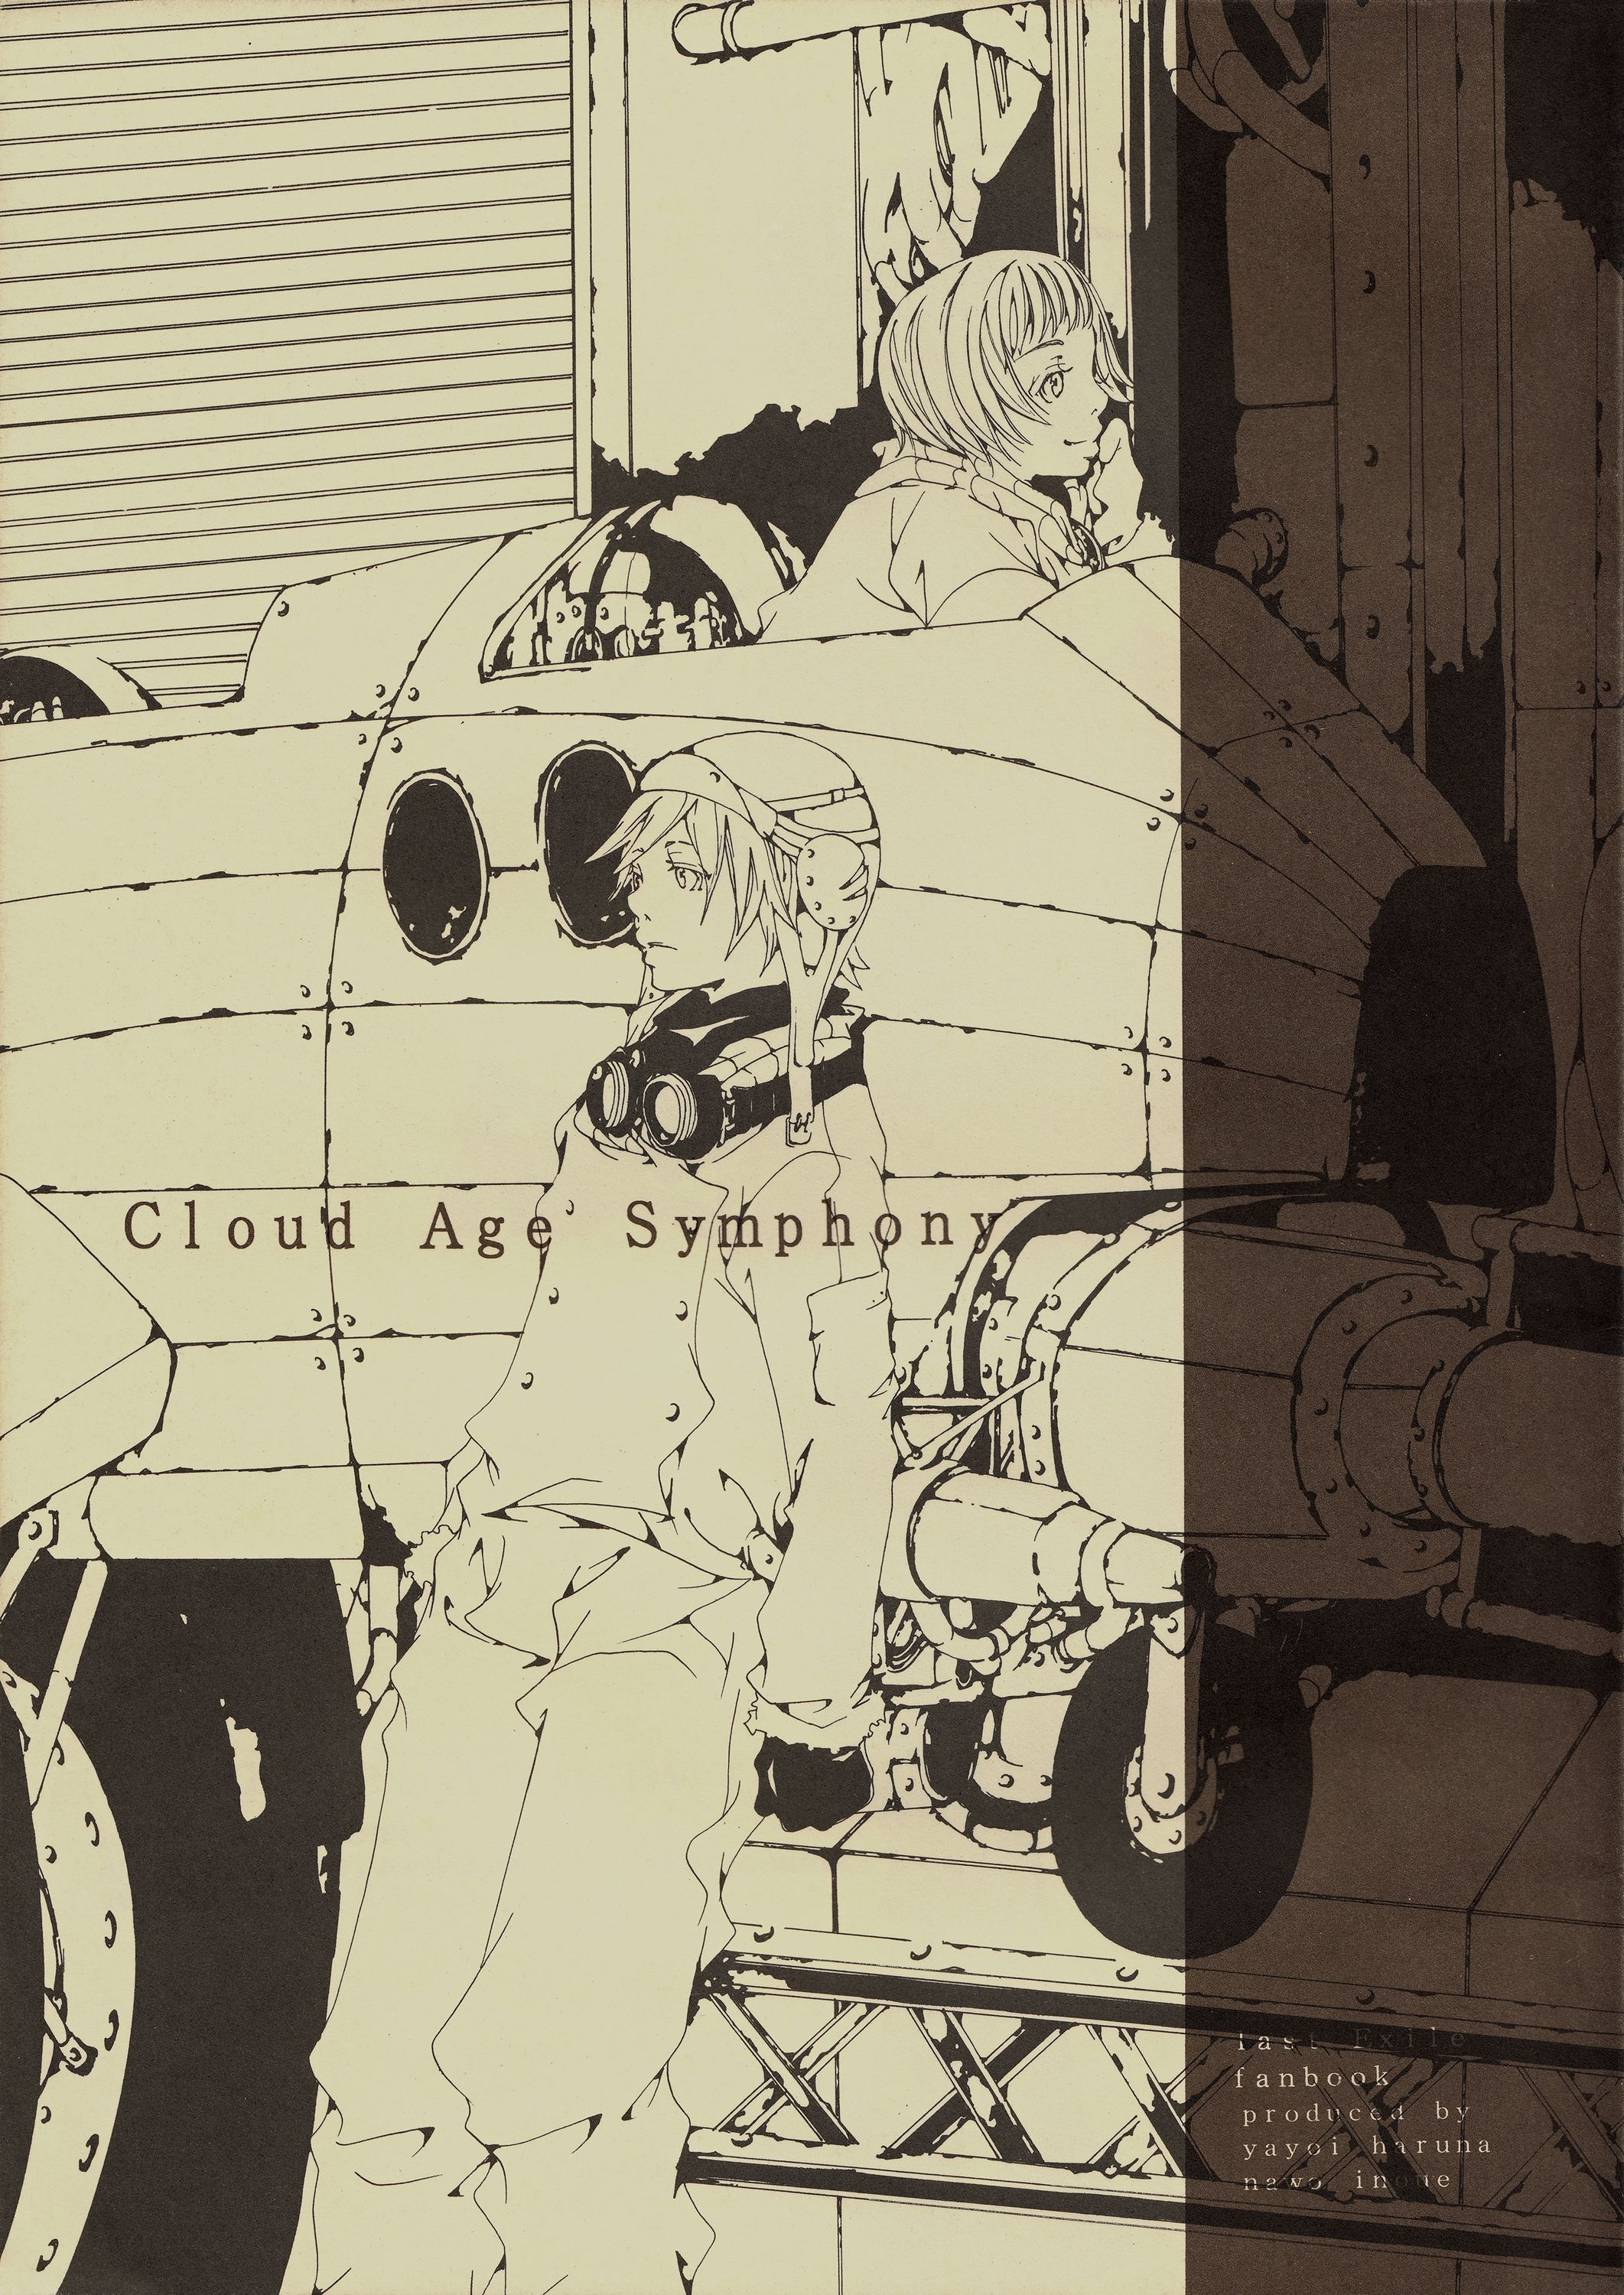 Last exile cloud age sympony anime images anime art